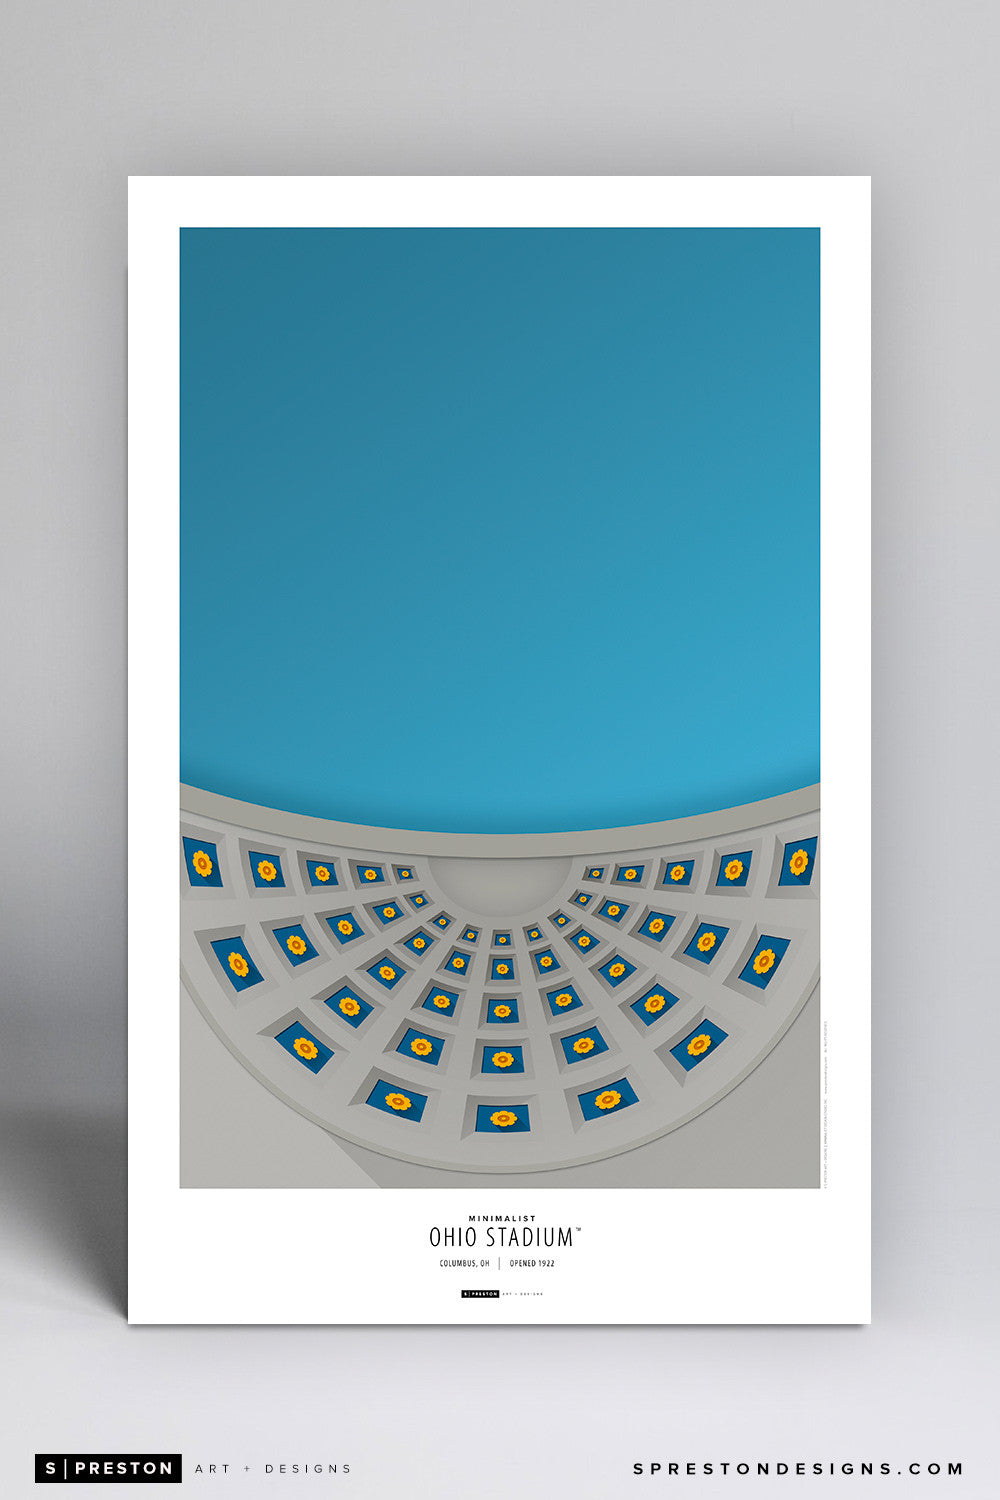 Minimalist Ohio Stadium Poster Print - Ohio State University - S. Preston Art + Designs